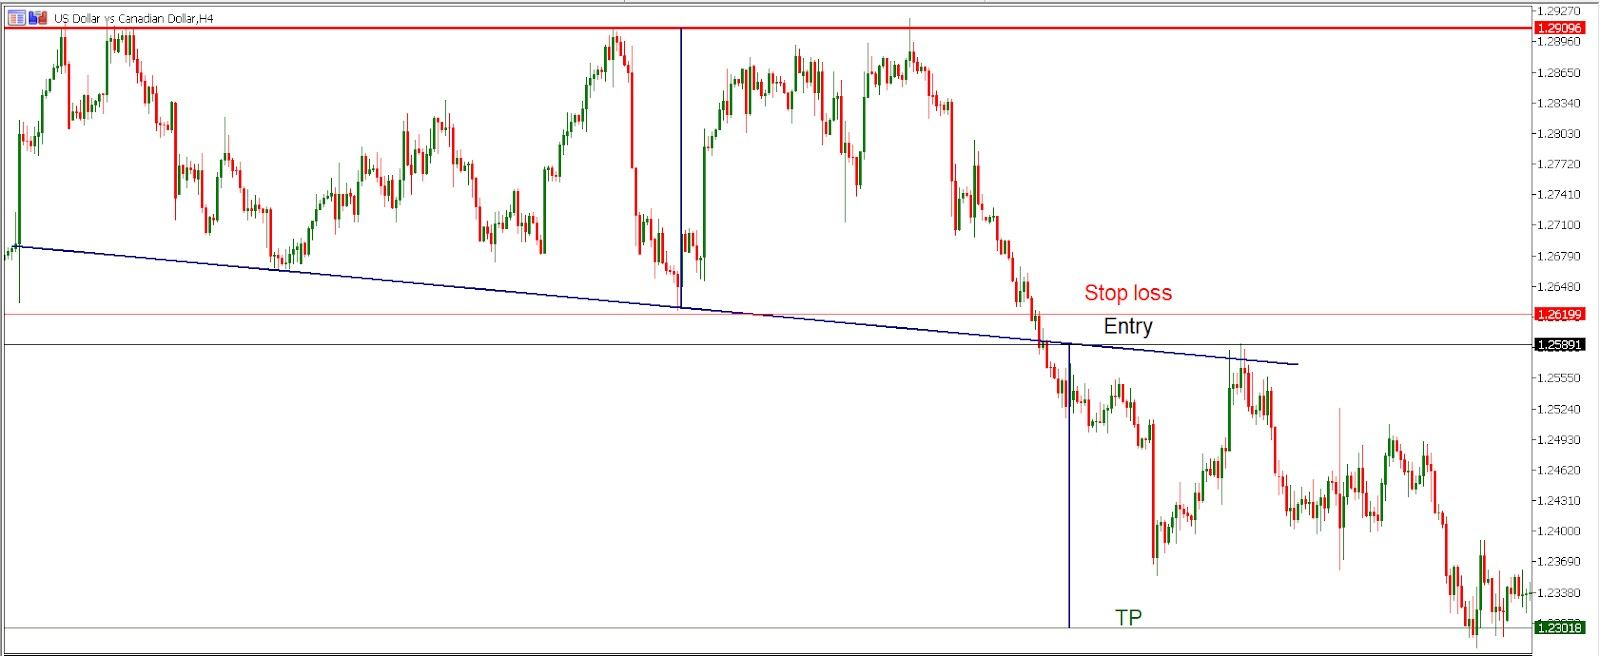 USD/JPY H4 chart - Trading the triple top pattern